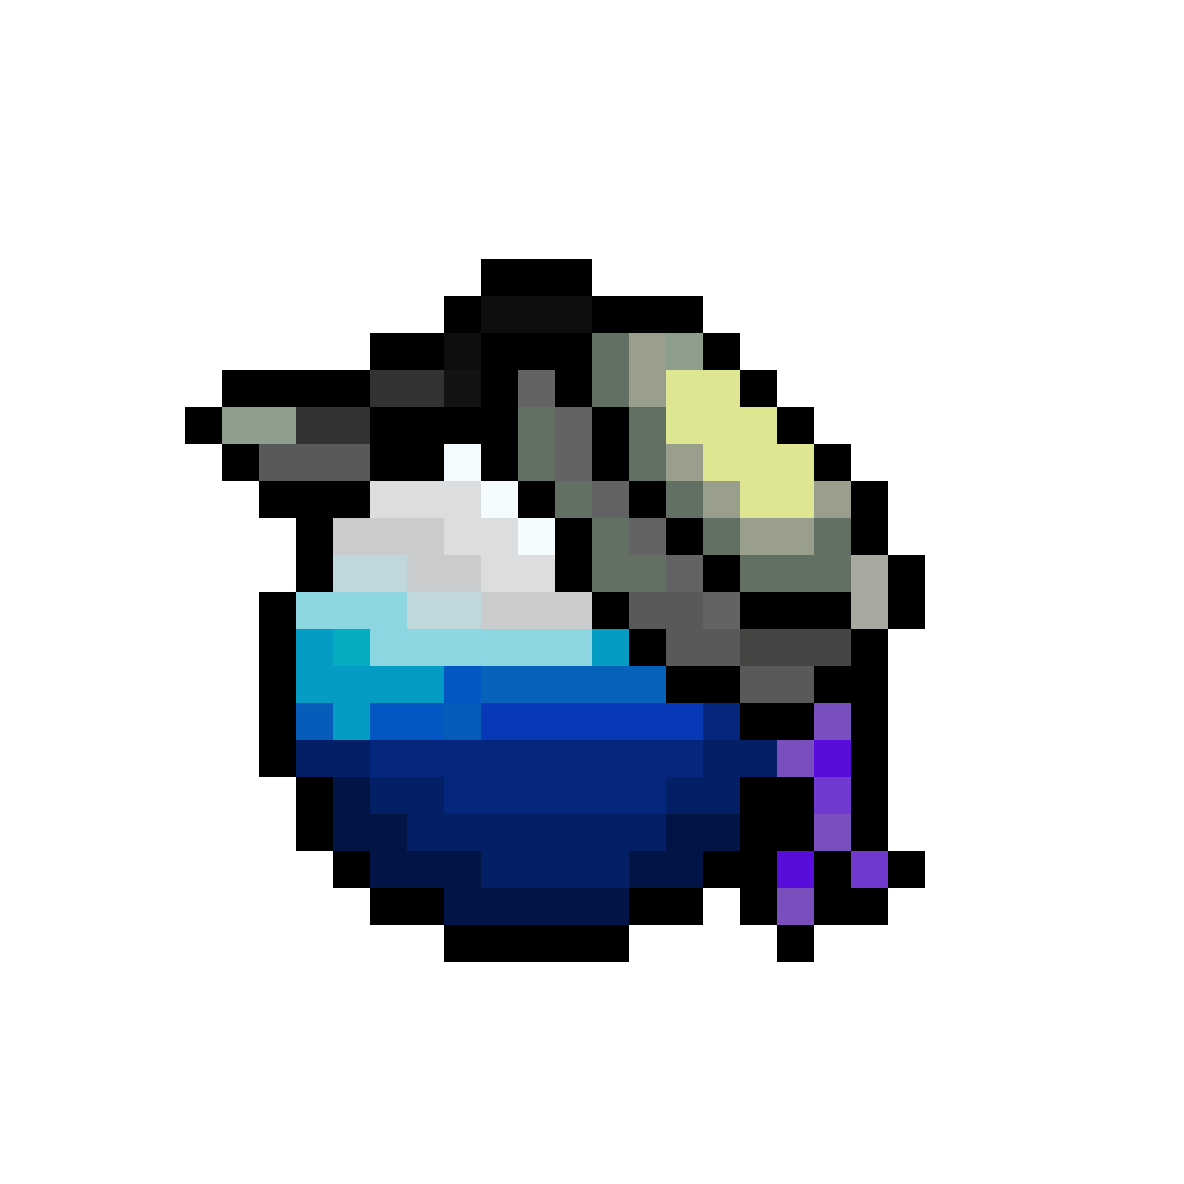 Fortnite potion png. Pixilart shield by howard